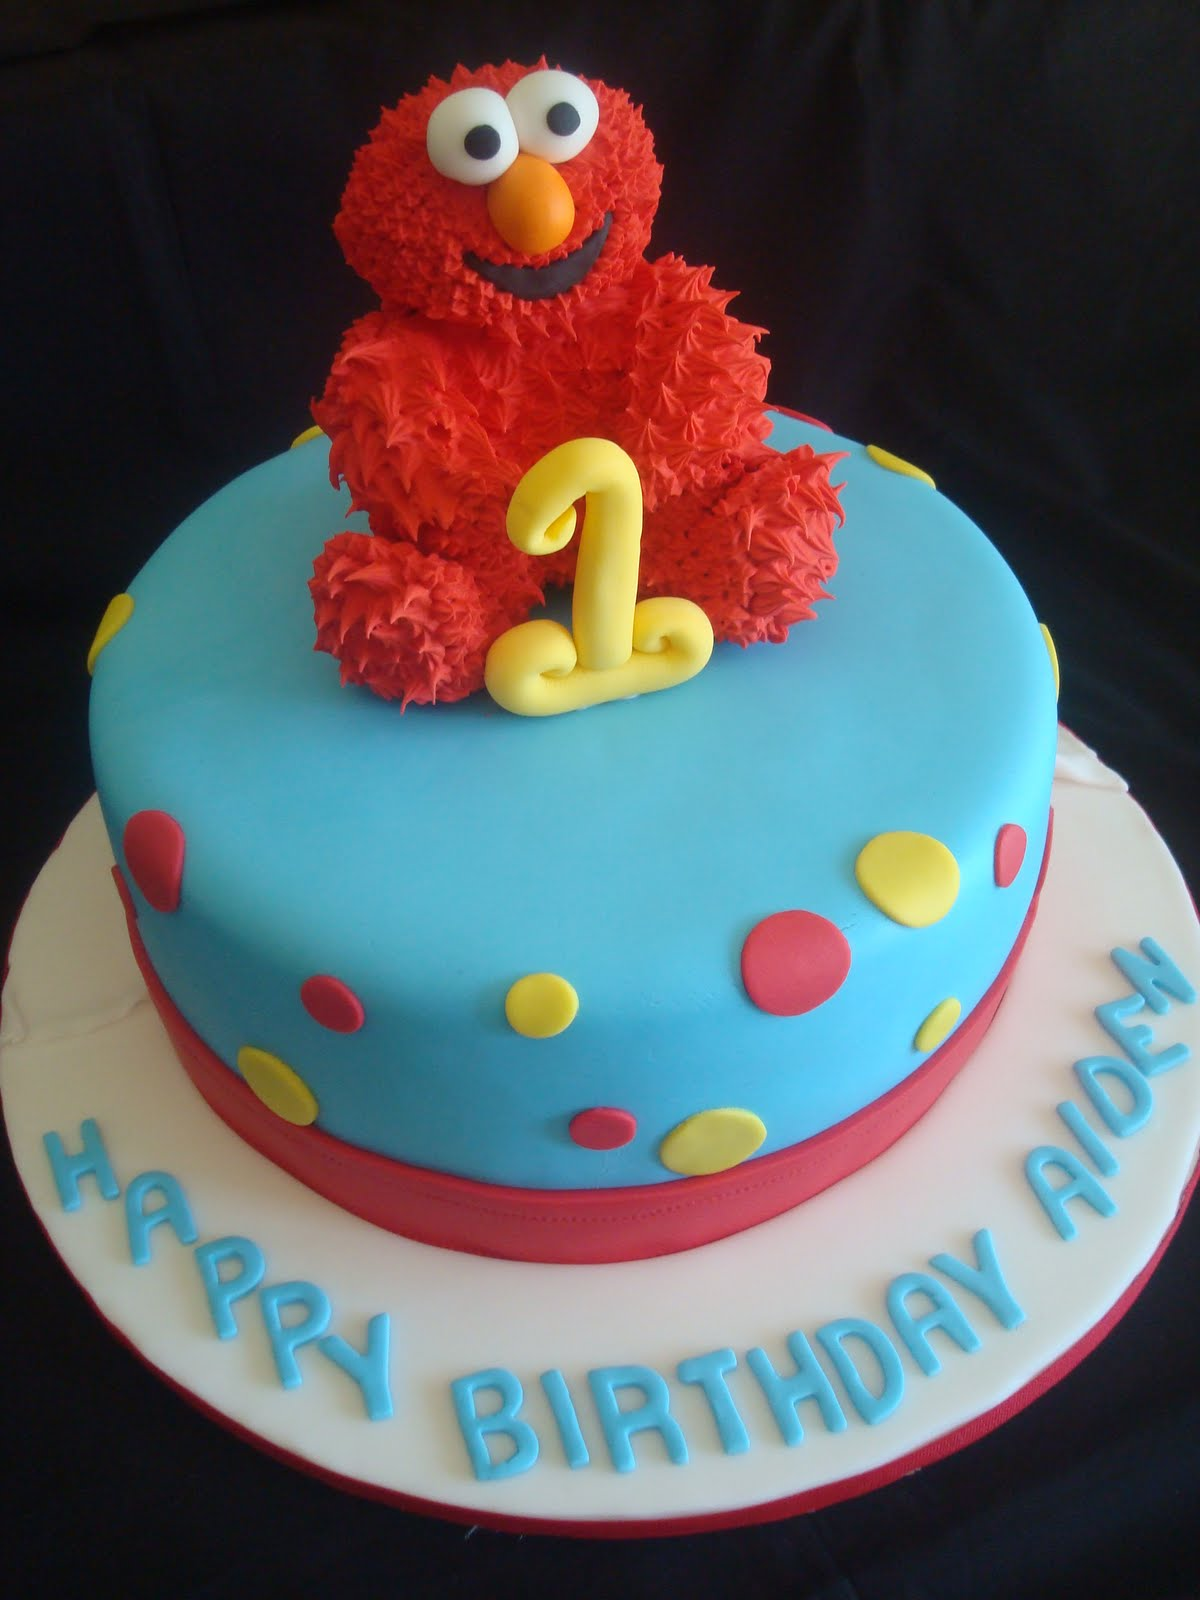 Elmo Design Birthday Cake : Elmo Cake Elmo Cake Ideas Elmo Cake 2012 Elmo ...